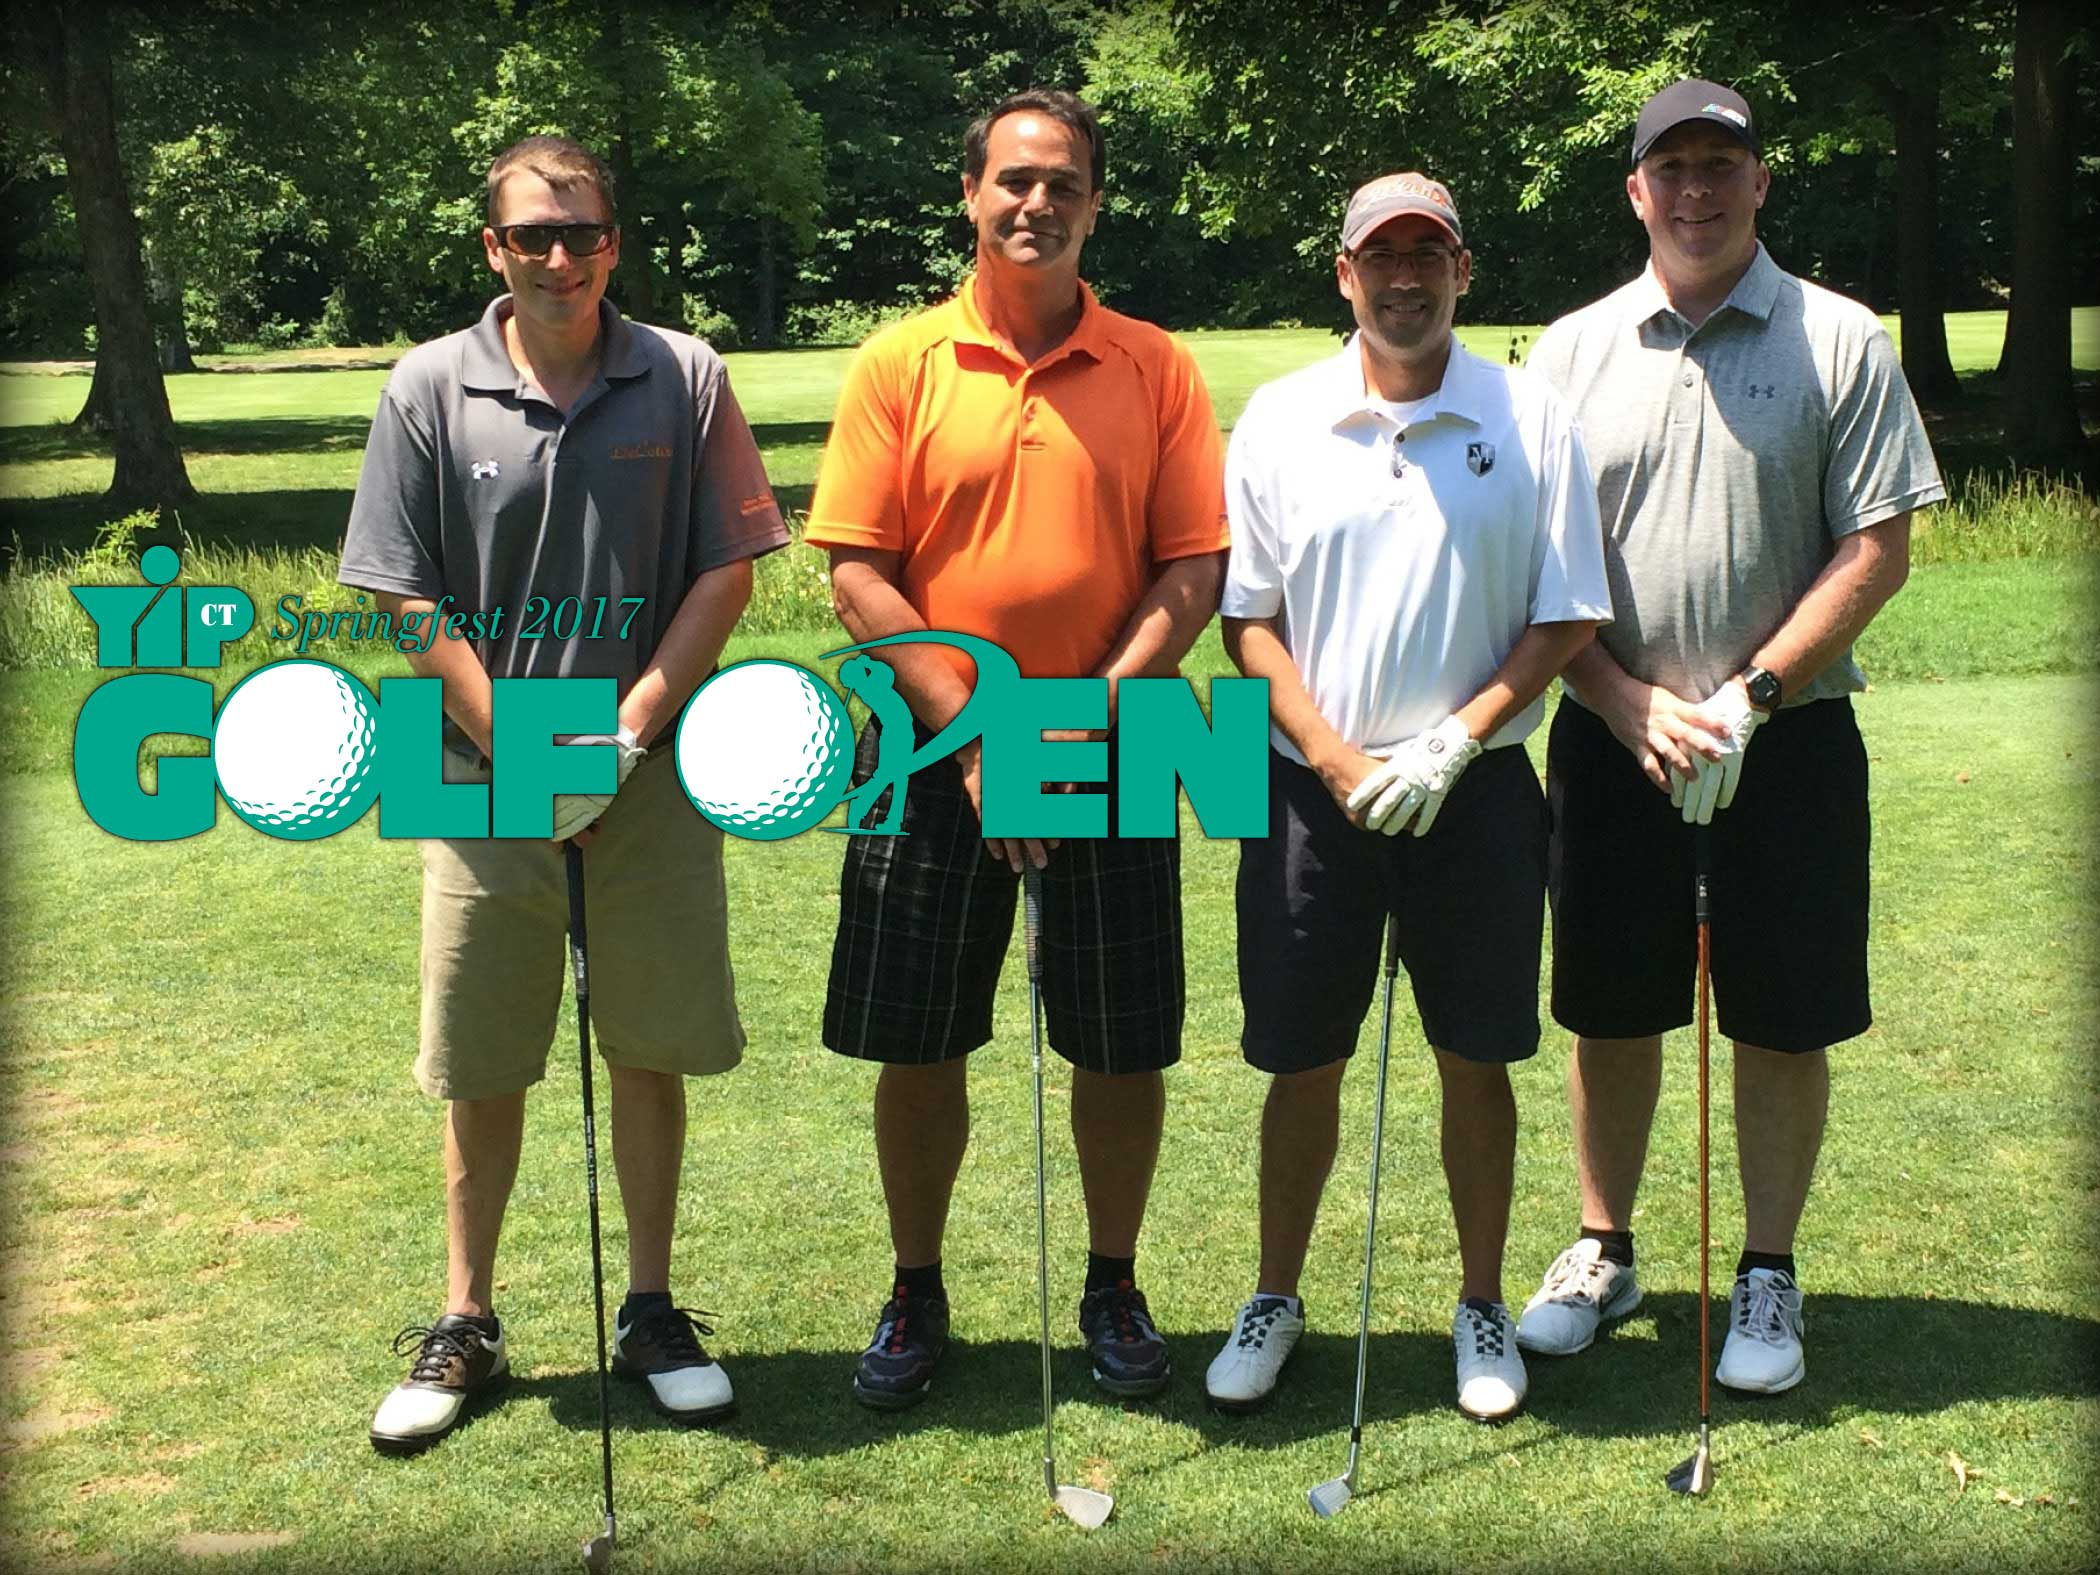 CTYIP Springfest 2017 Golf Open